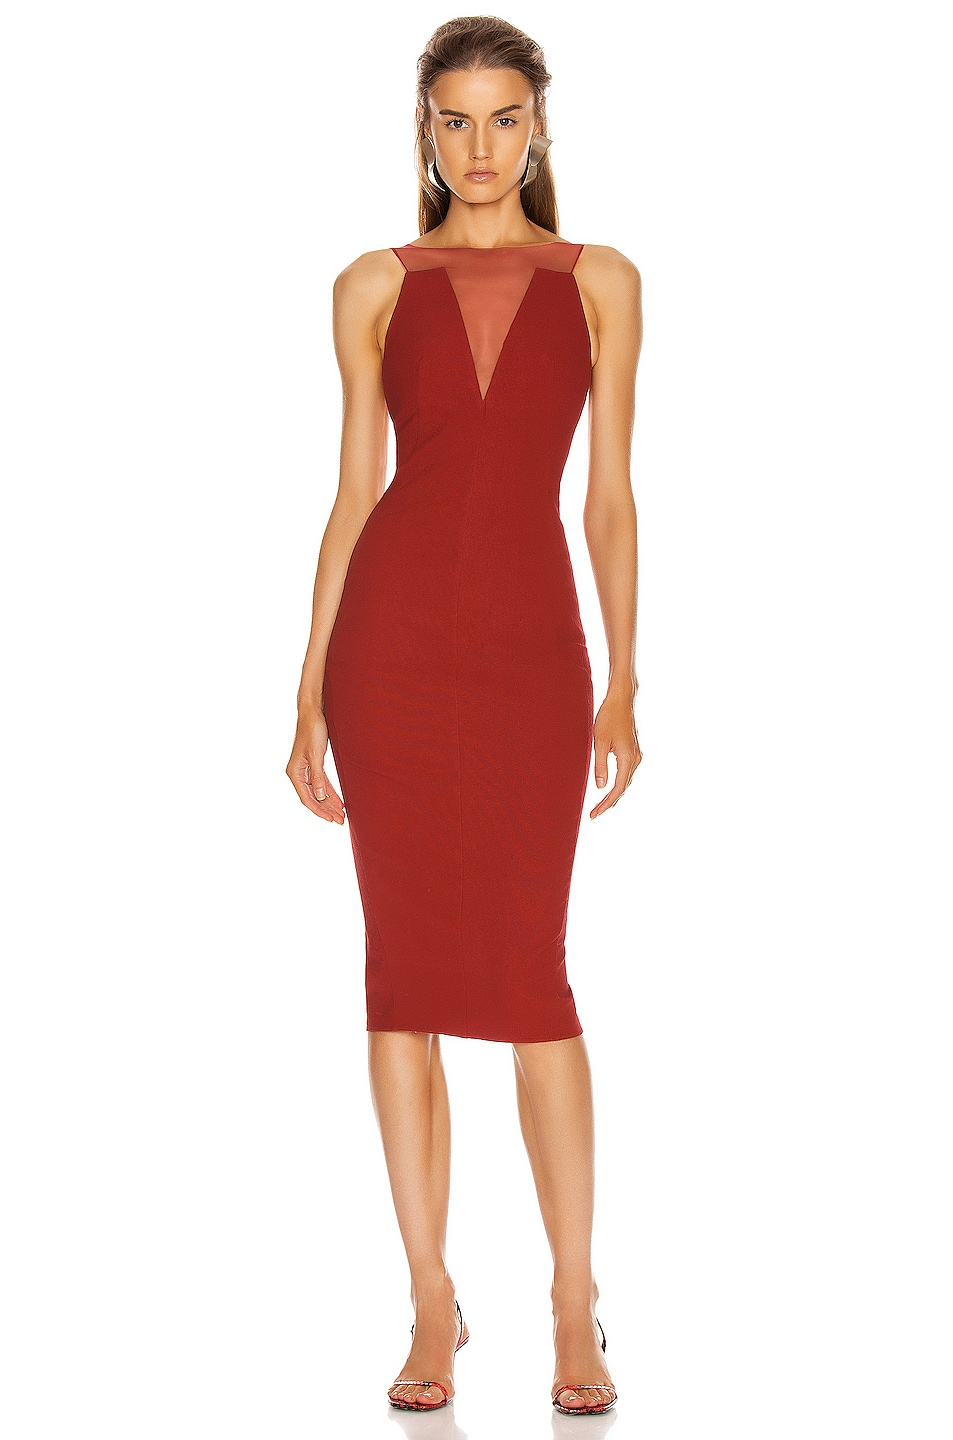 Image 1 of Rick Owens Prong Dress in Cardinal Red